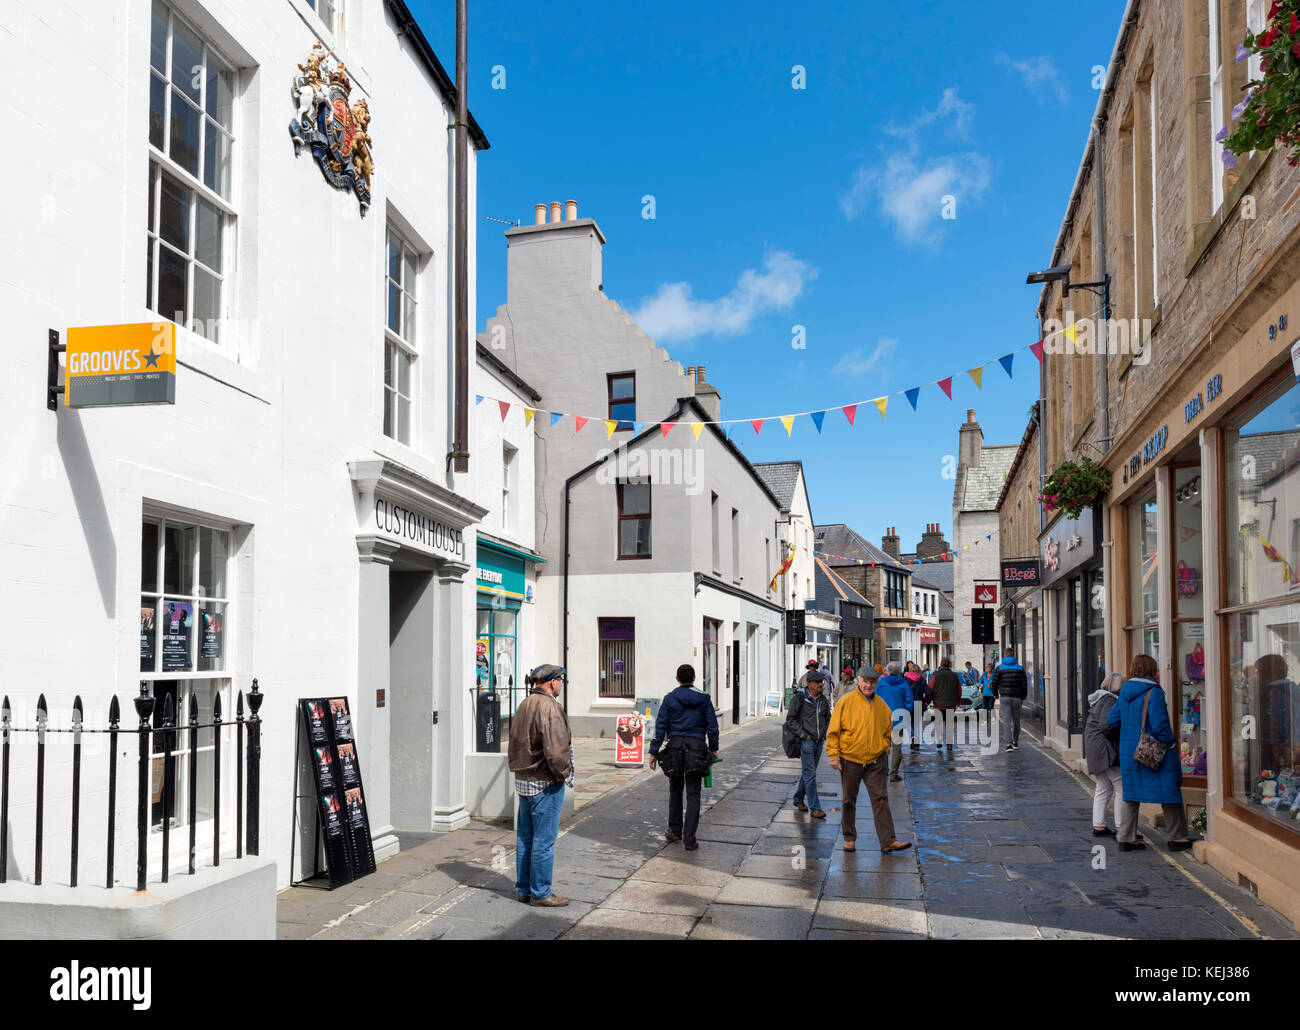 Shops on Albert Street in the town centre, Kirkwall, Mainland, Orkney, Scotland, UK - Stock Image